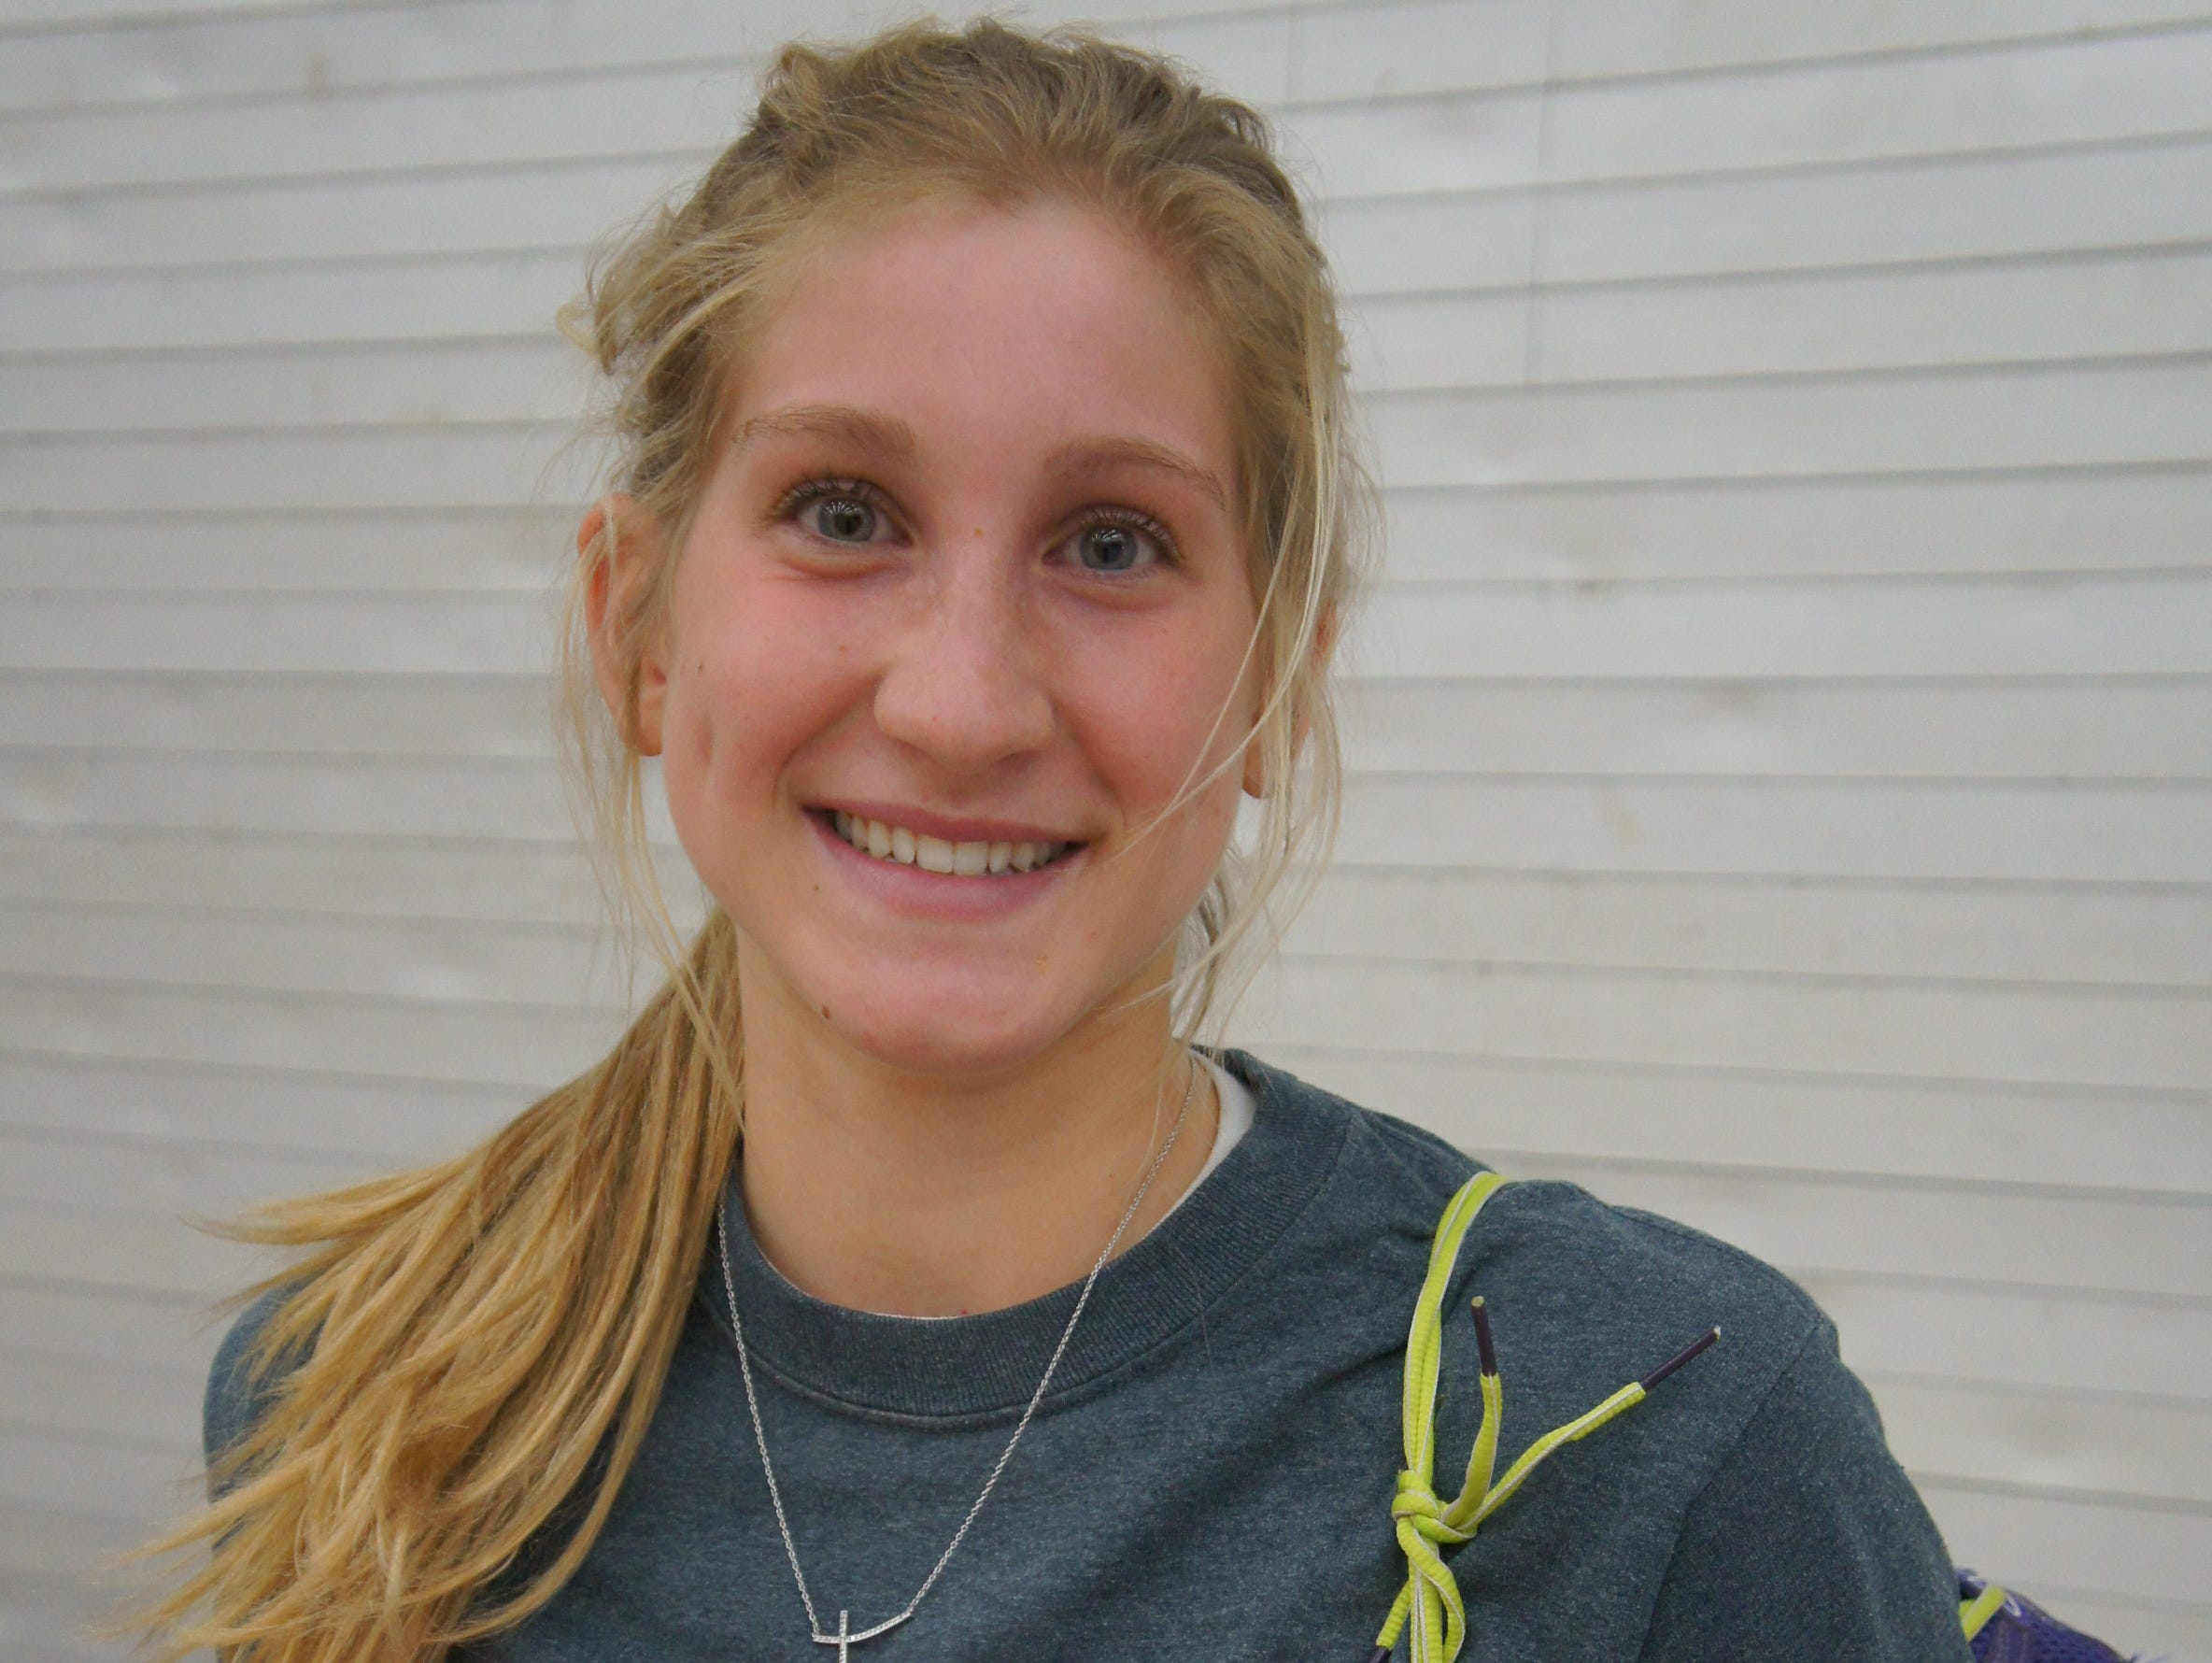 Marshfield senior Martha Kupfer is a three-sport athlete for the Tigers, owns three school records in track and is gunning for at least one more this season.